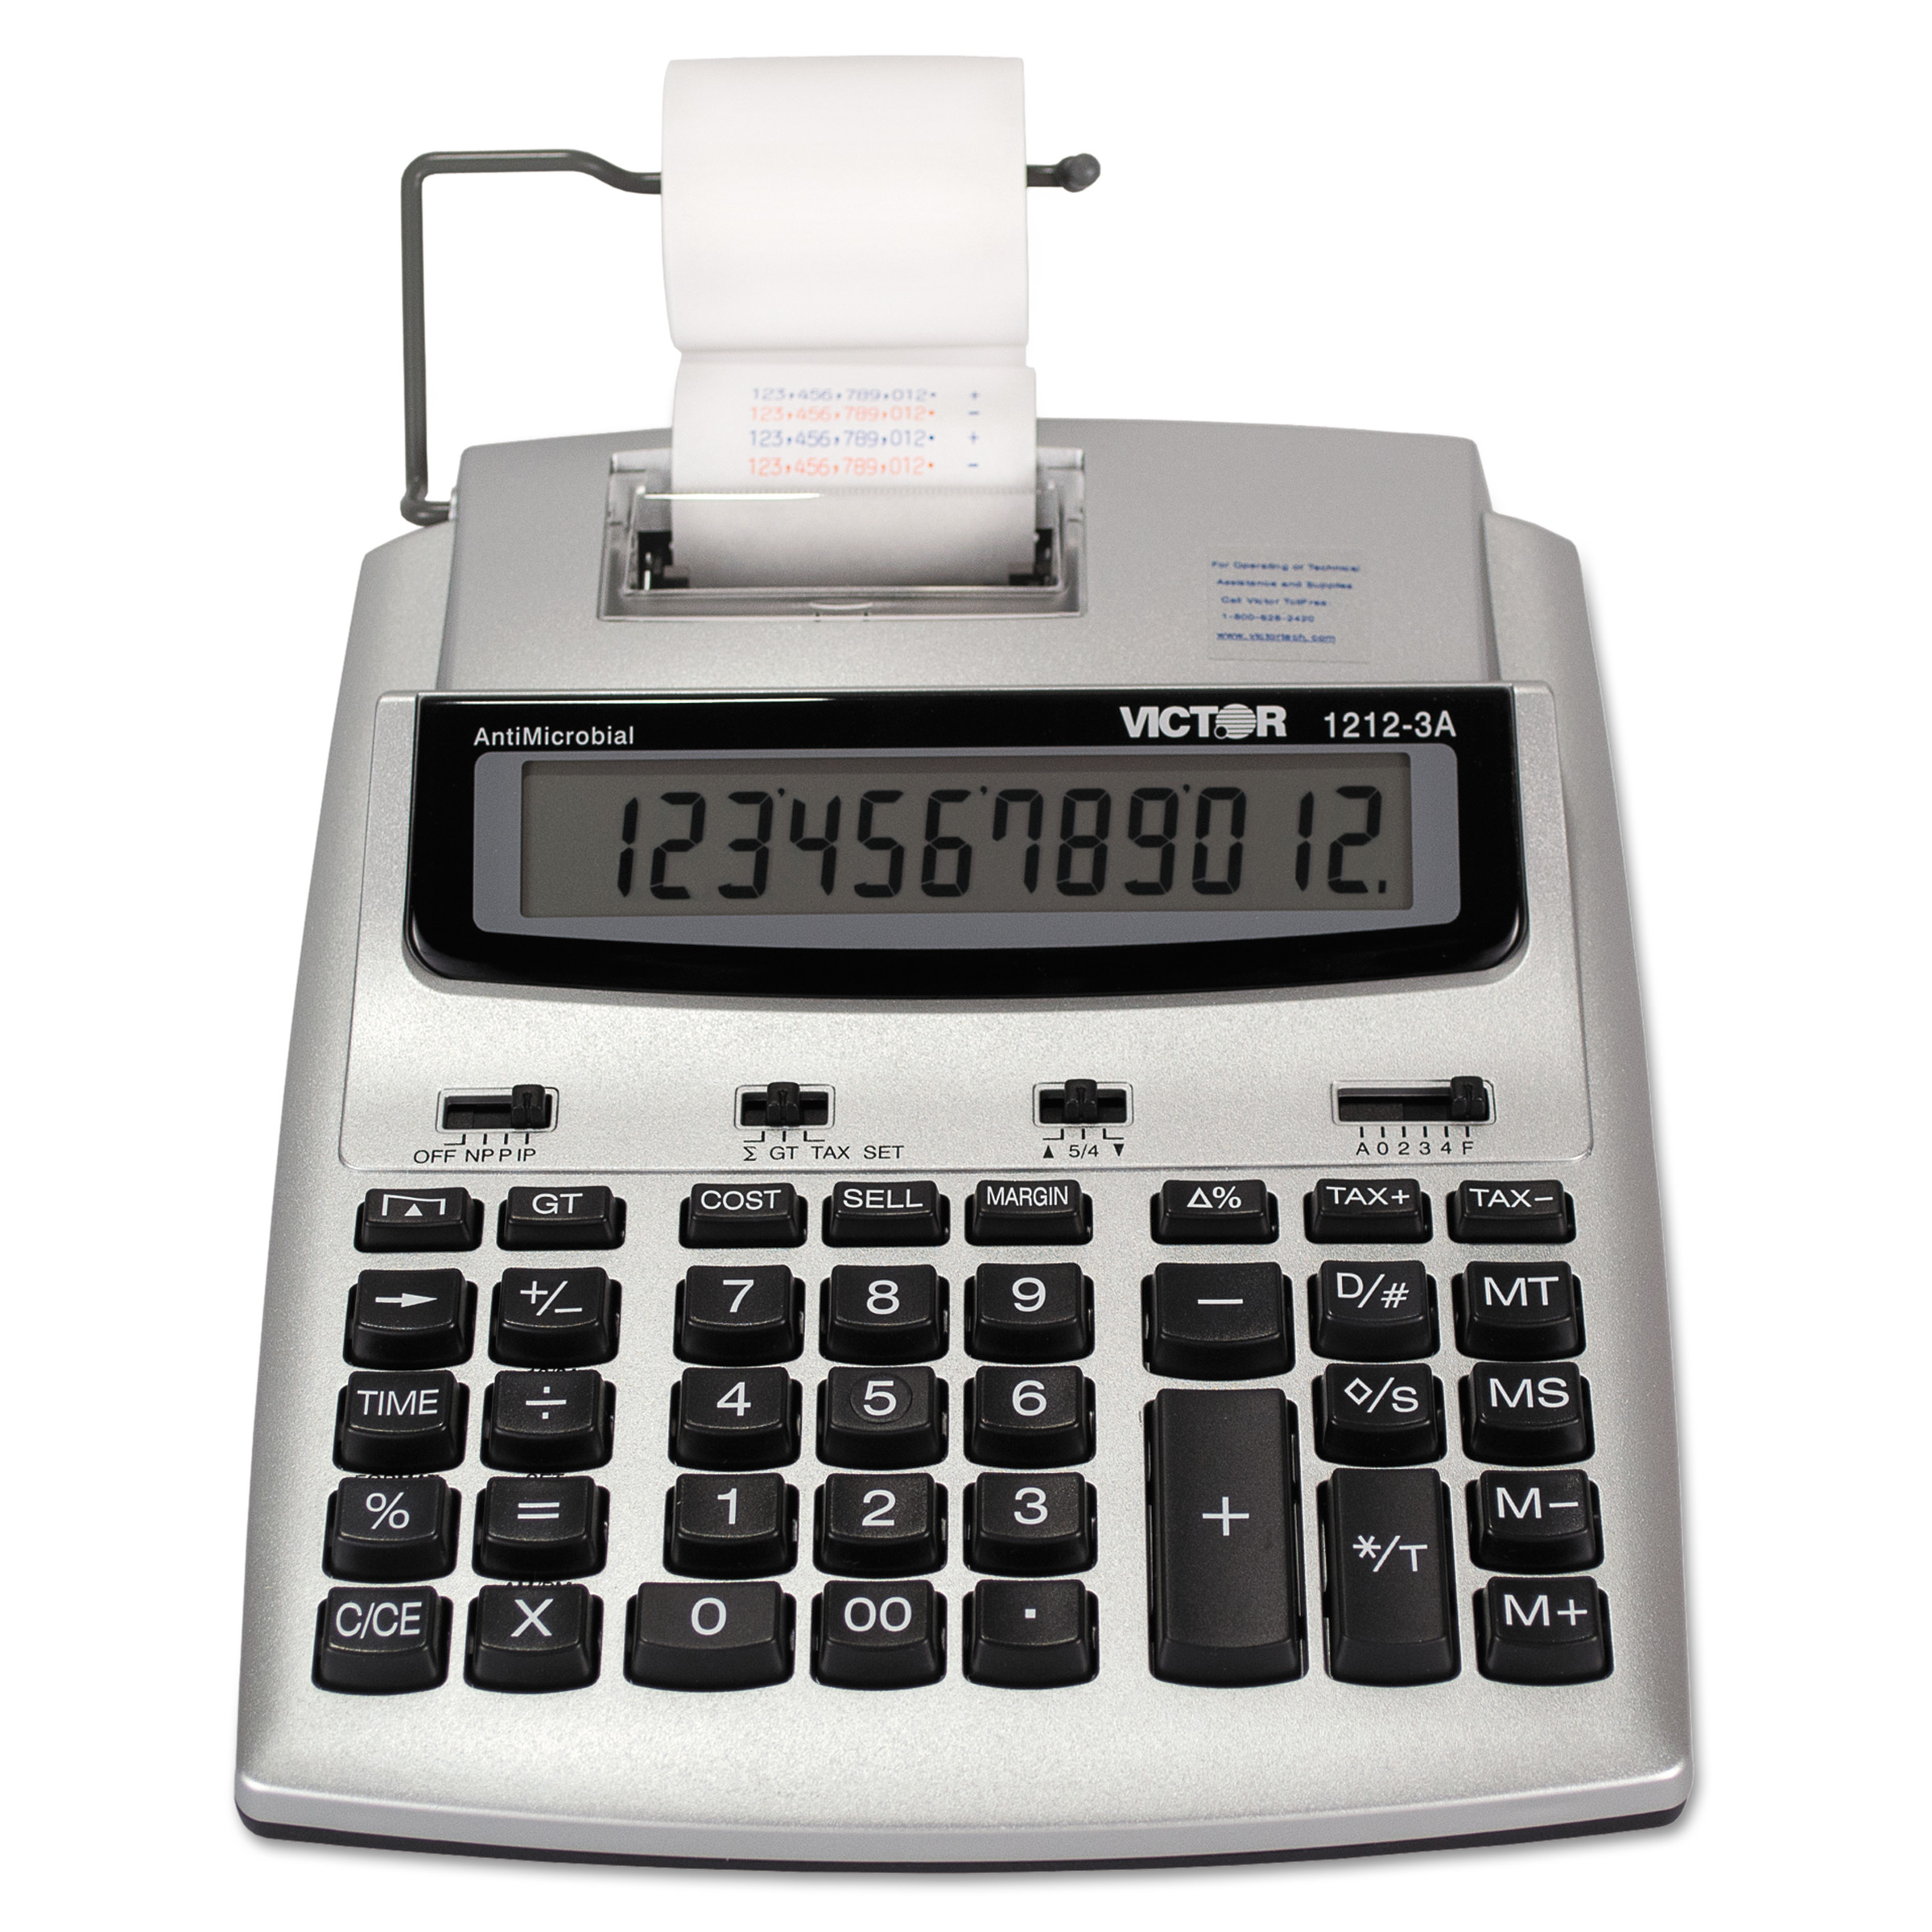 Victor 1212-3A Antimicrobial Printing Calculator, Blue/Red Print, 2.7 Lines/Sec